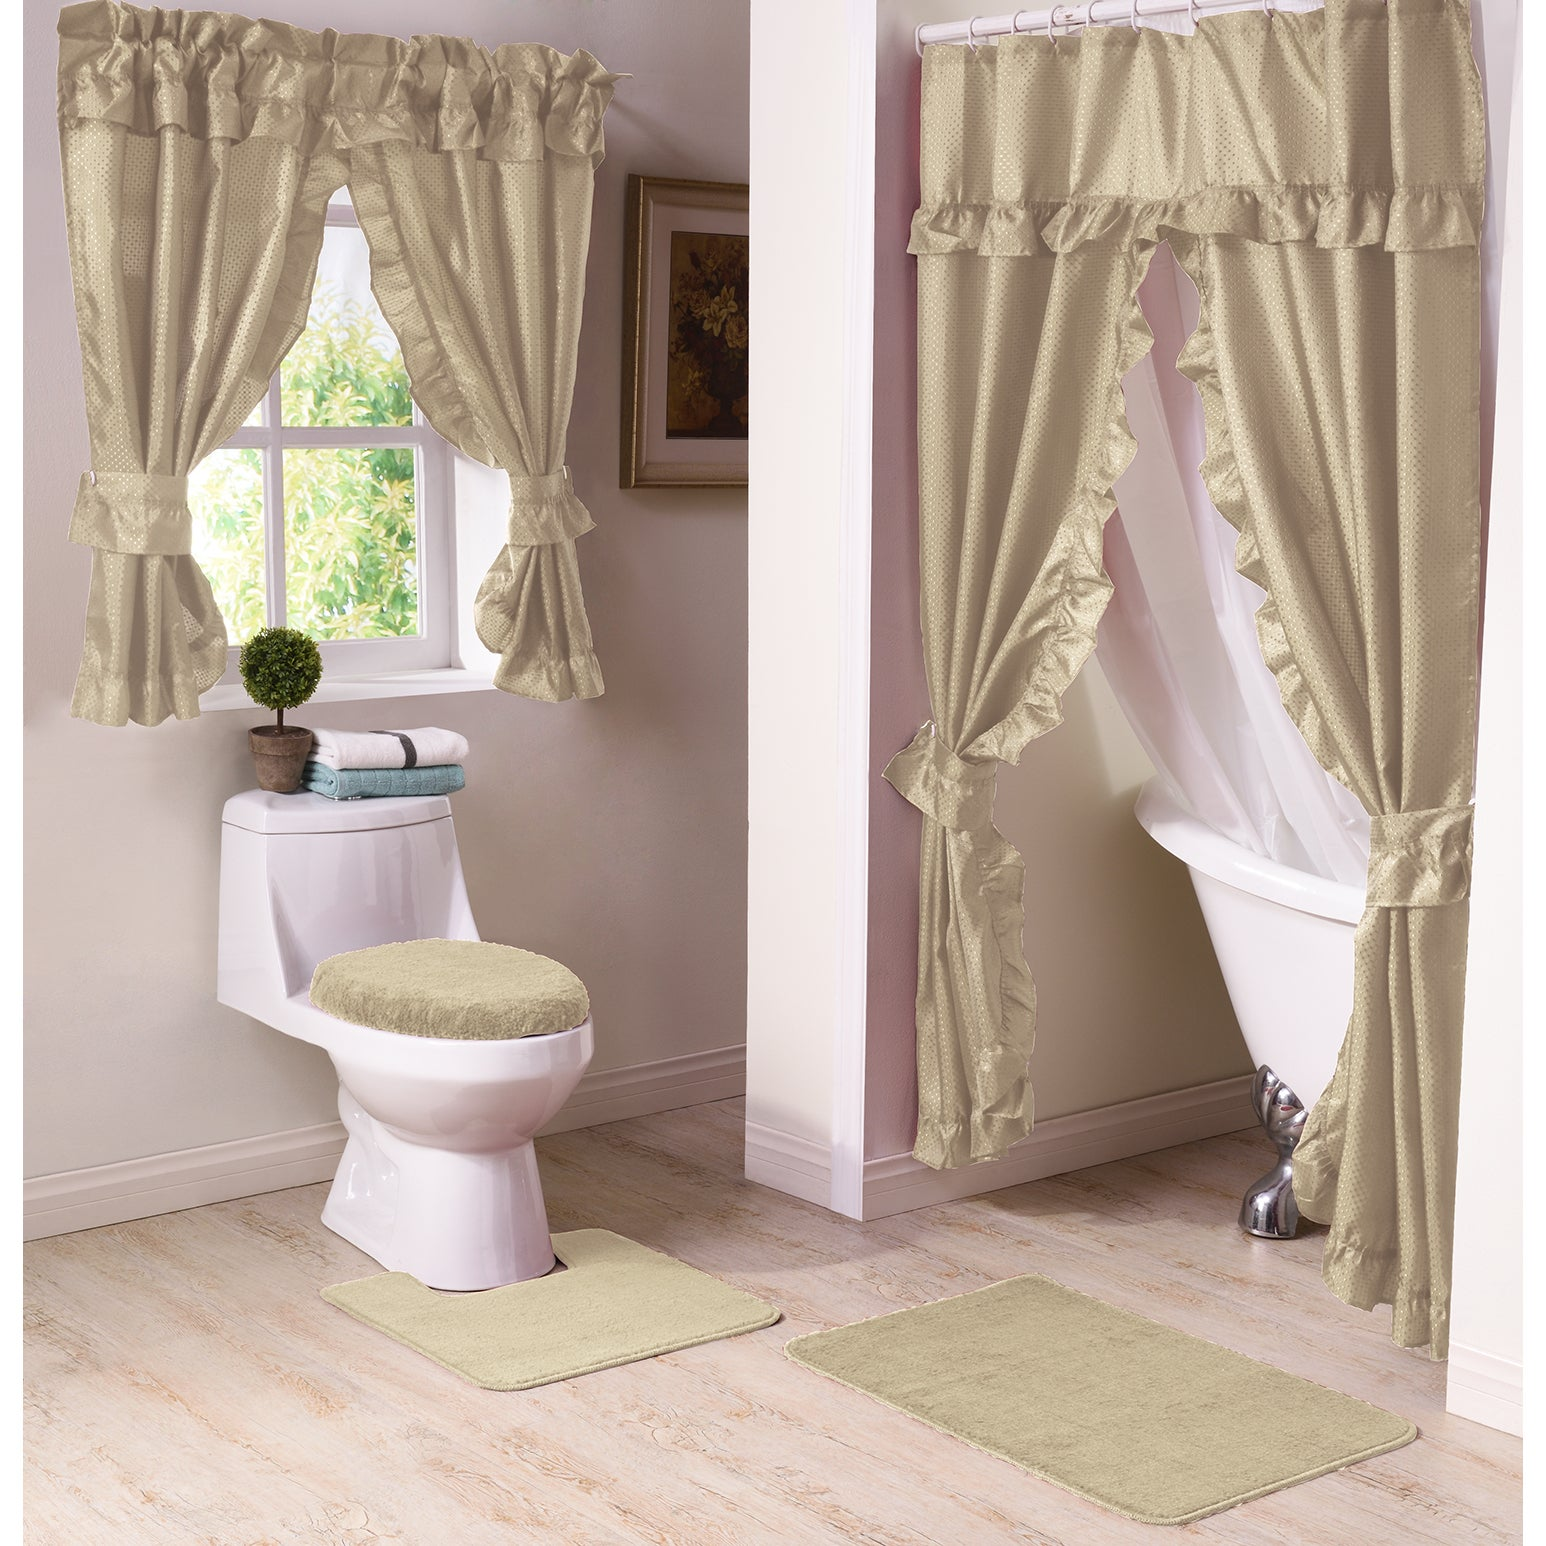 Shower Curtain And Window